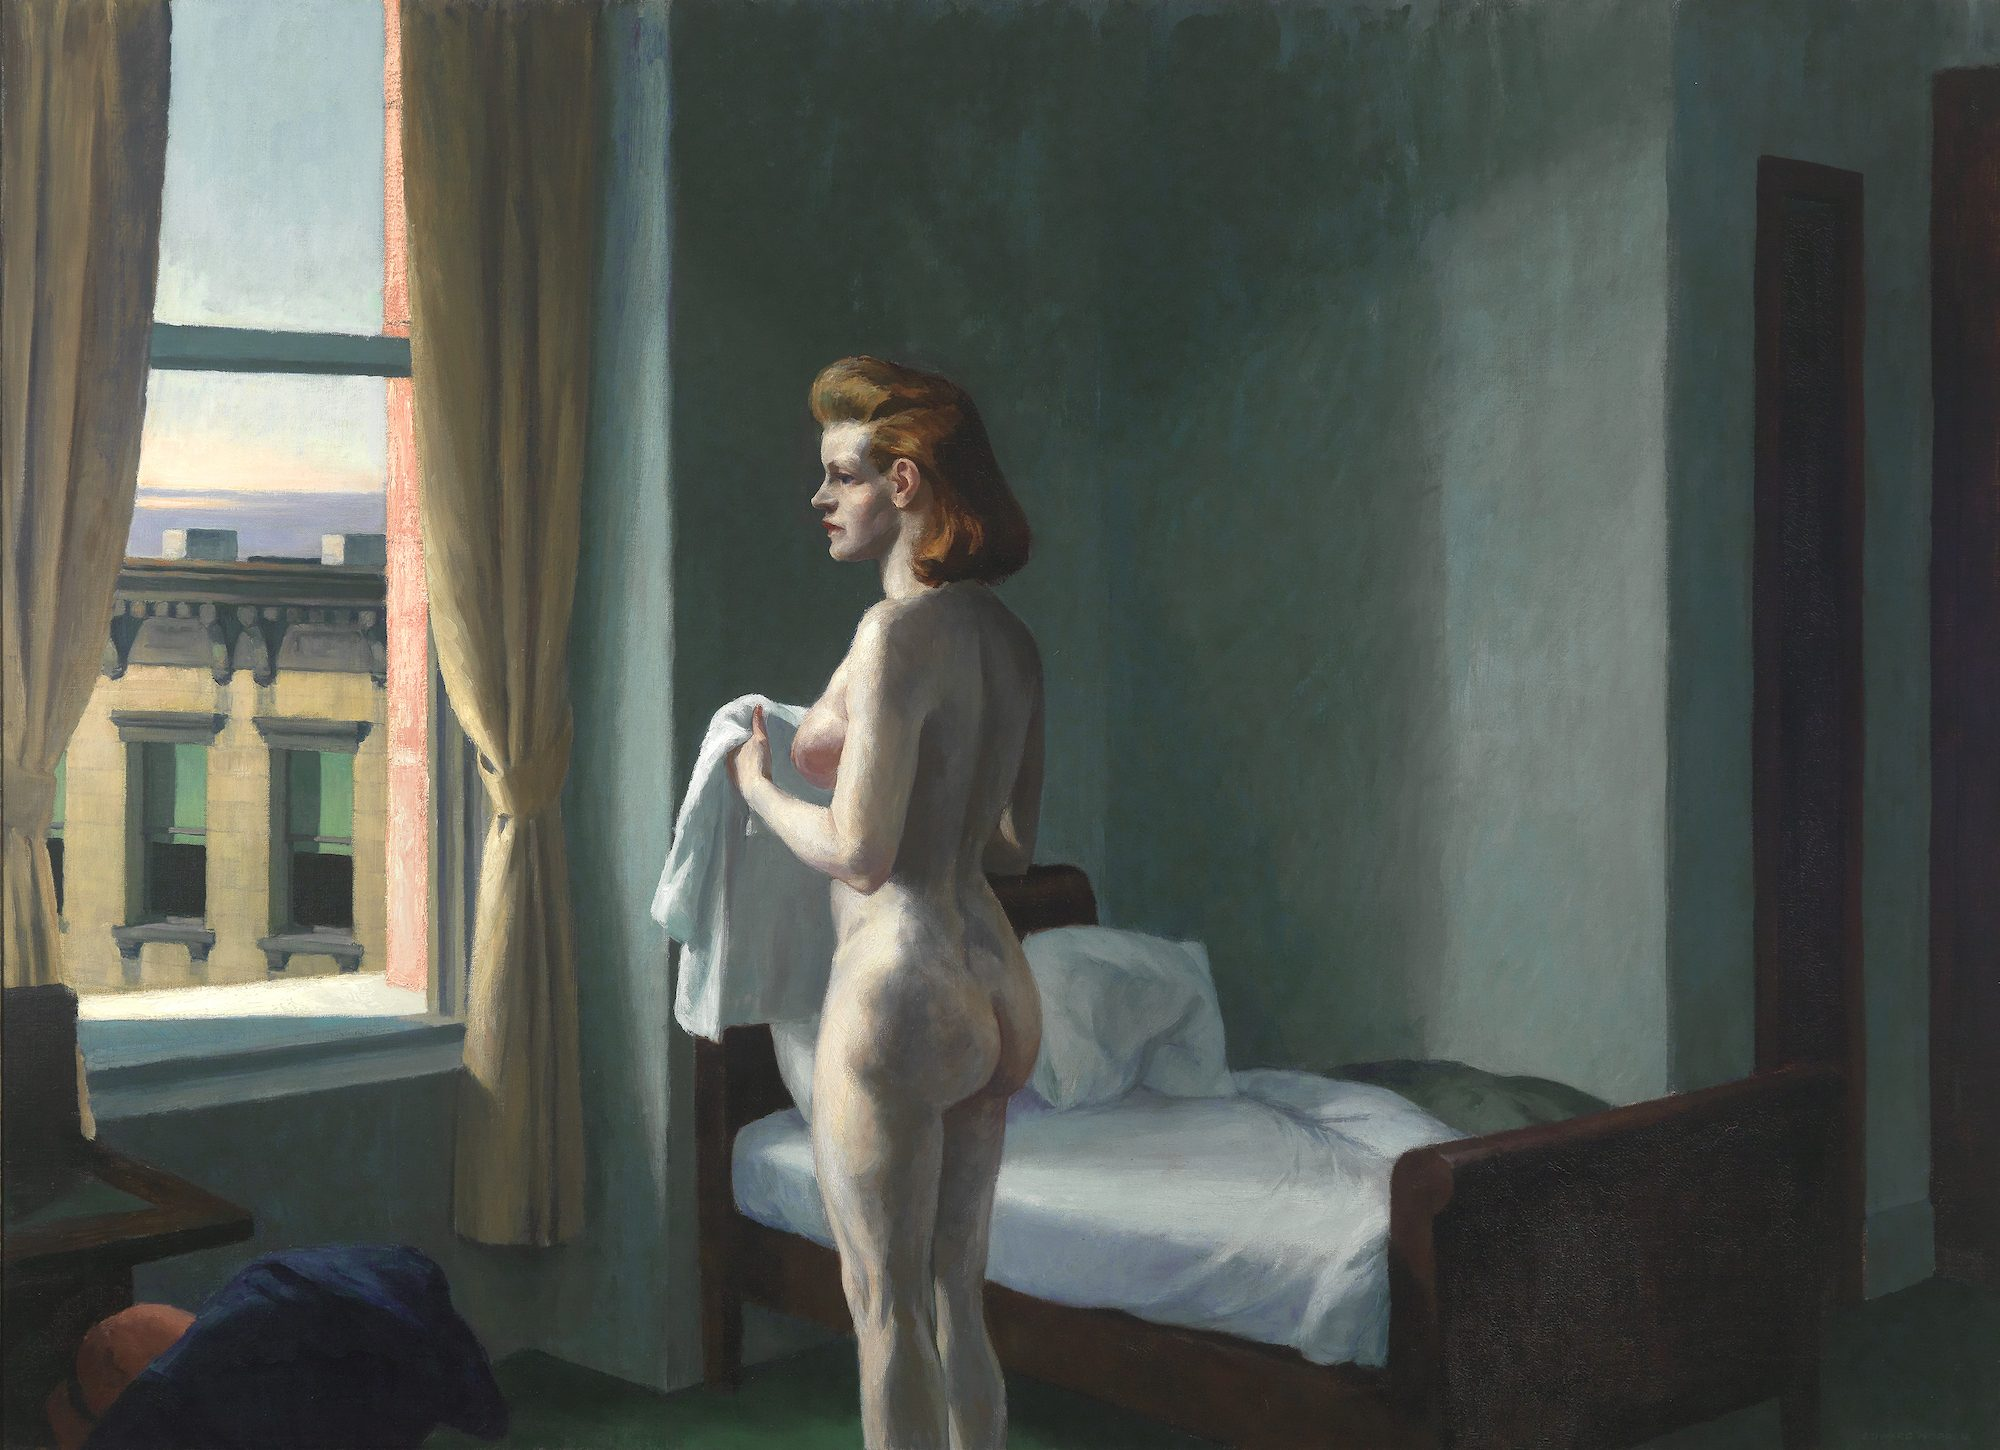 Edward Hopper (American, 1882–1967) Morning in a City, 1944. Oil on canvas. Bequest of Lawrence H. Bloedel, Class of 1923, 77.9.7